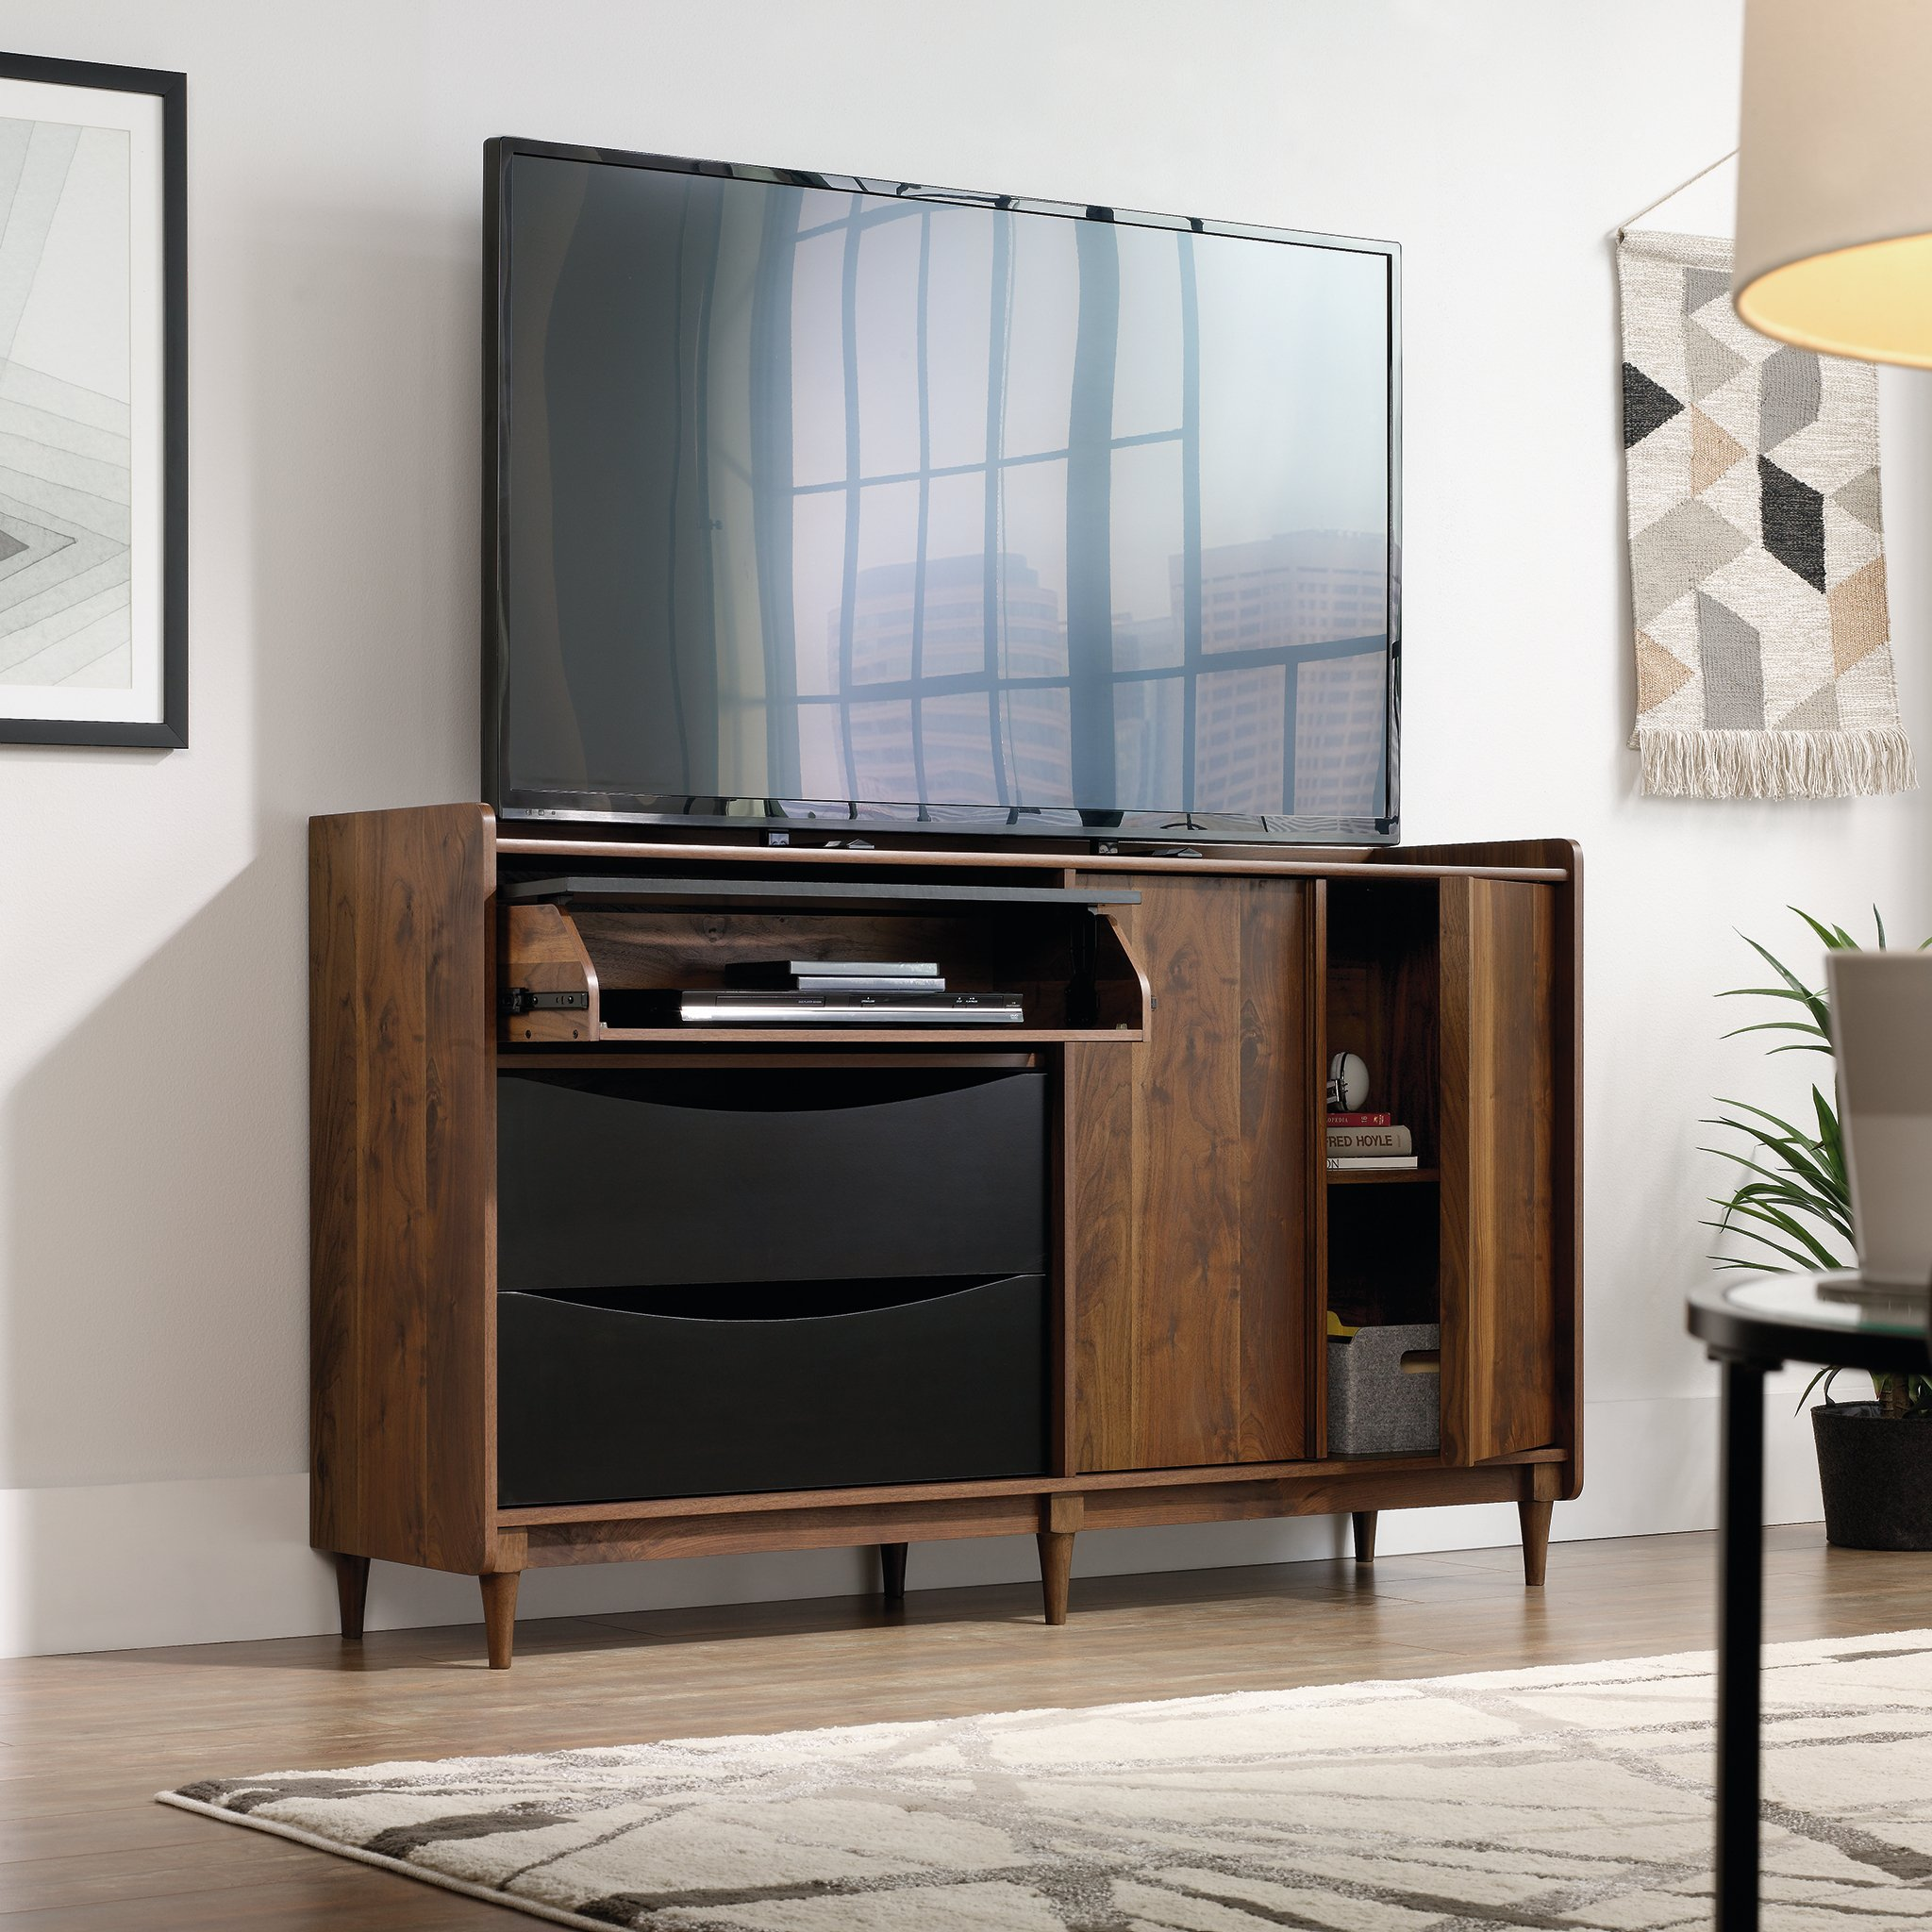 Sauder 420280 Harvey Park Entertainment Credenza, Grand Walnut Finish by Sauder (Image #3)